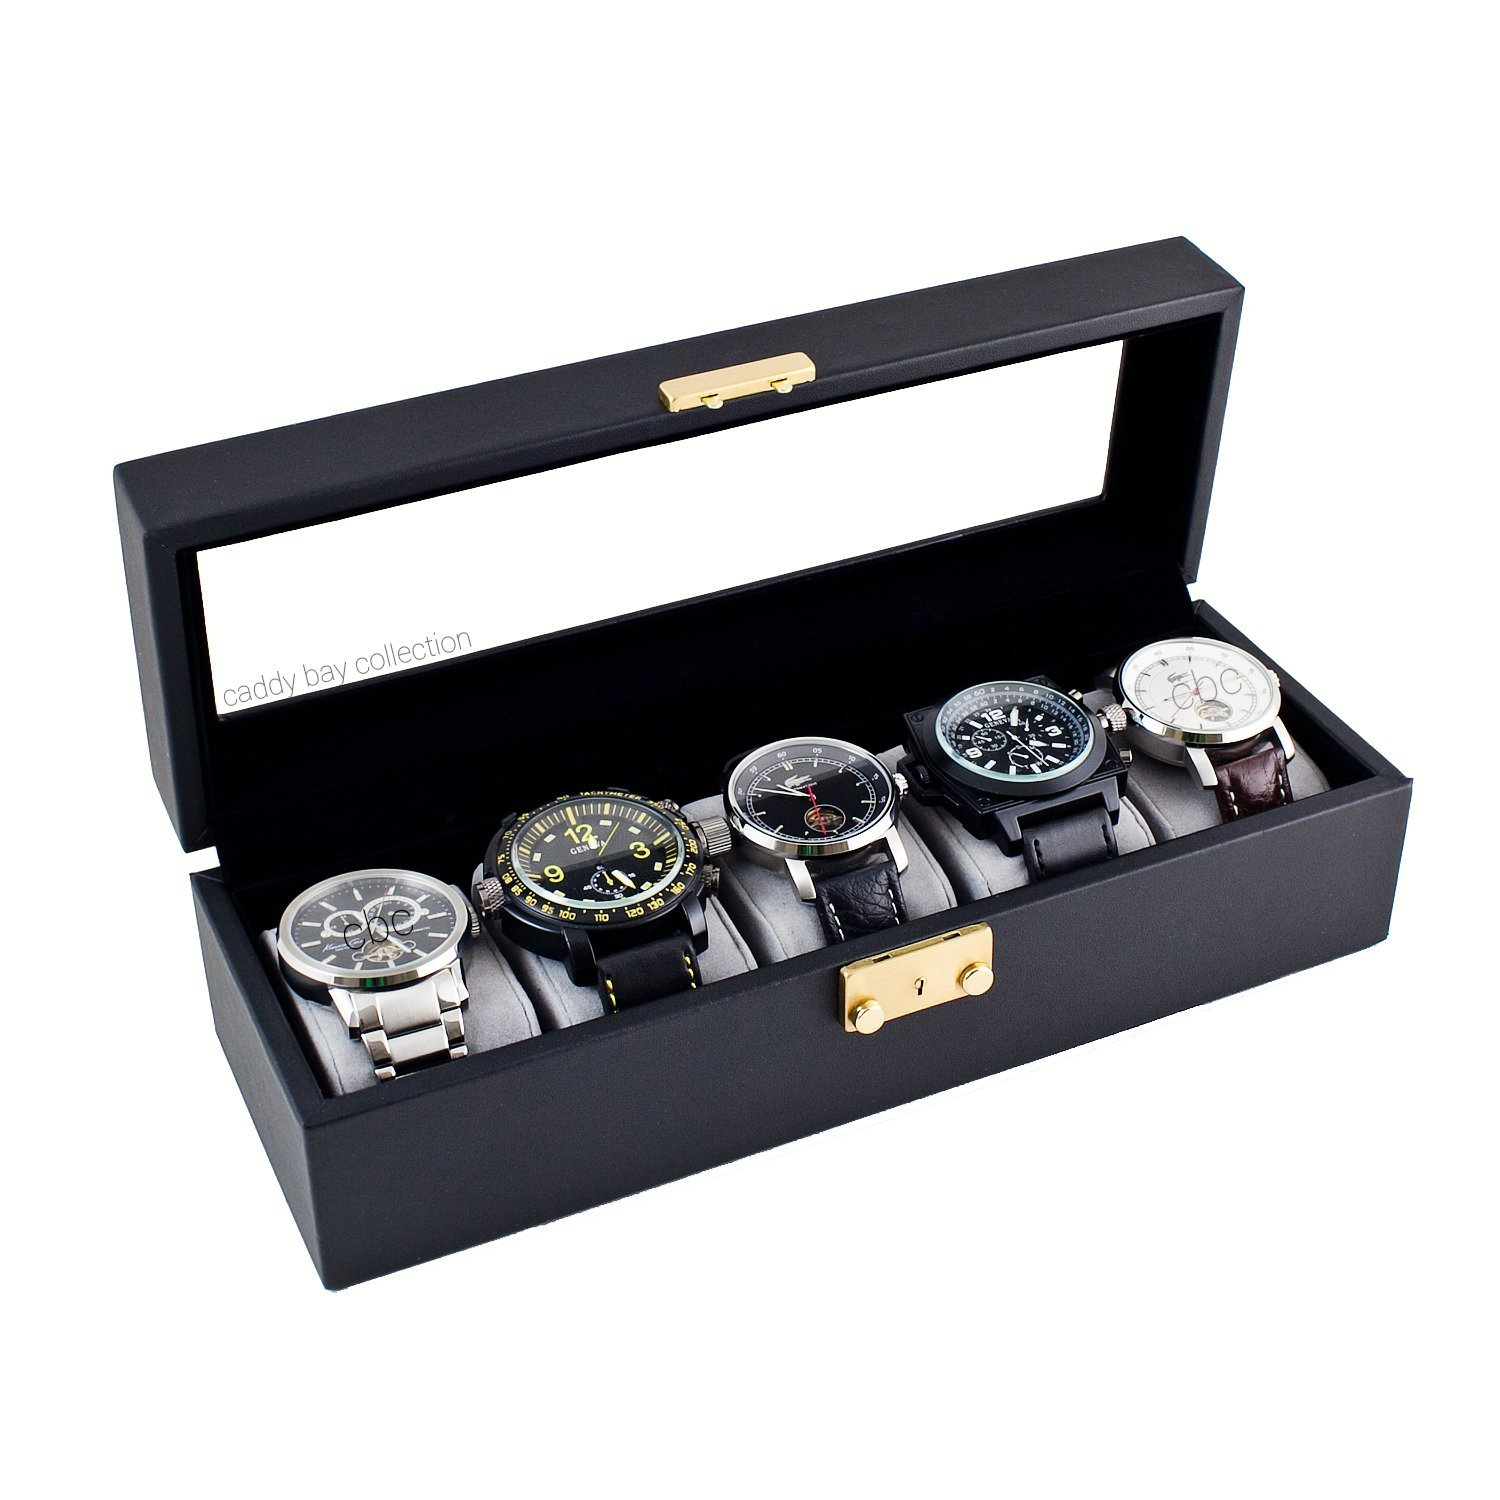 Caddy Bay Collection Compact Black Watch Case Storage Box With Glass Top Holds 5 Watches